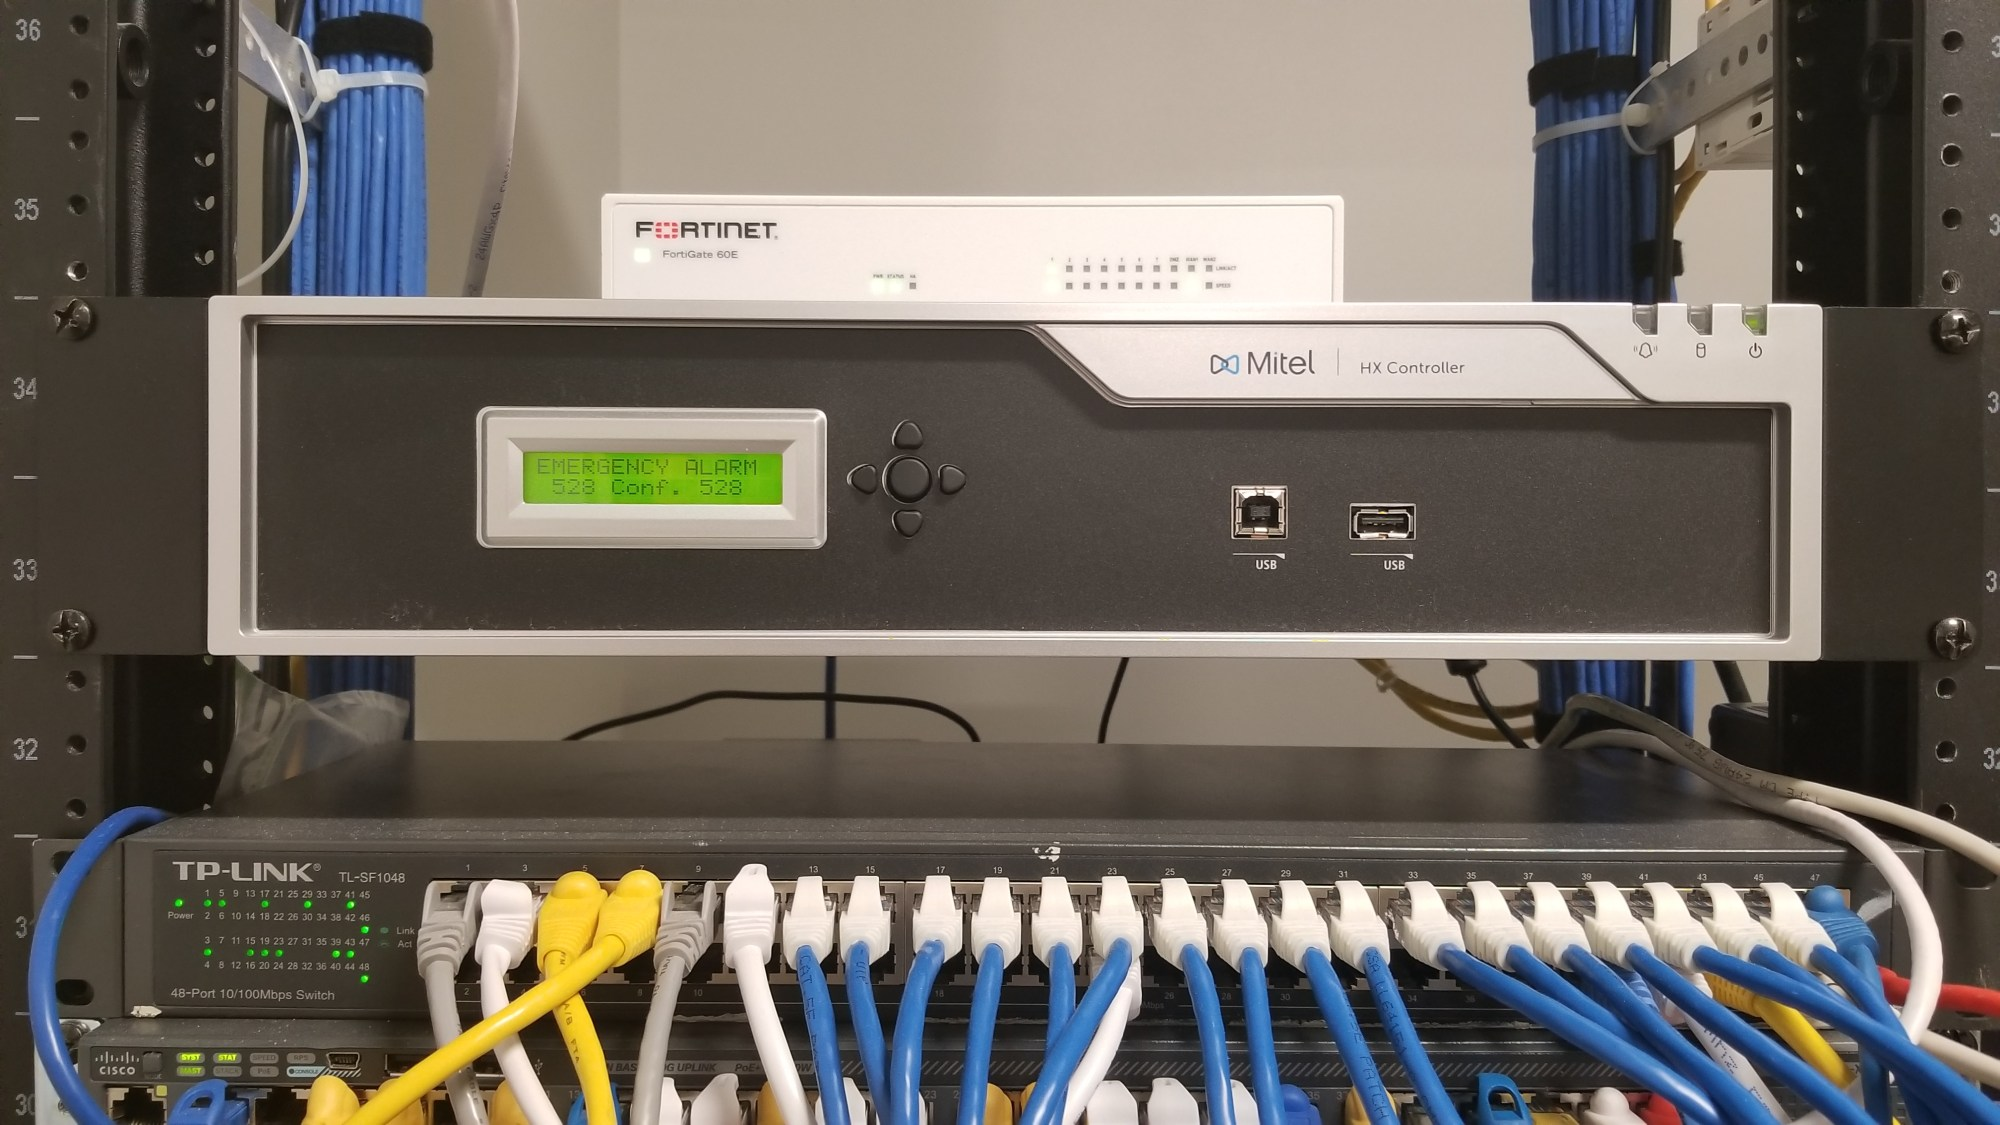 hight resolution of  our mitel voip system connected conference room wireless and wired data network was installed and is all working problem free we are very happy with our